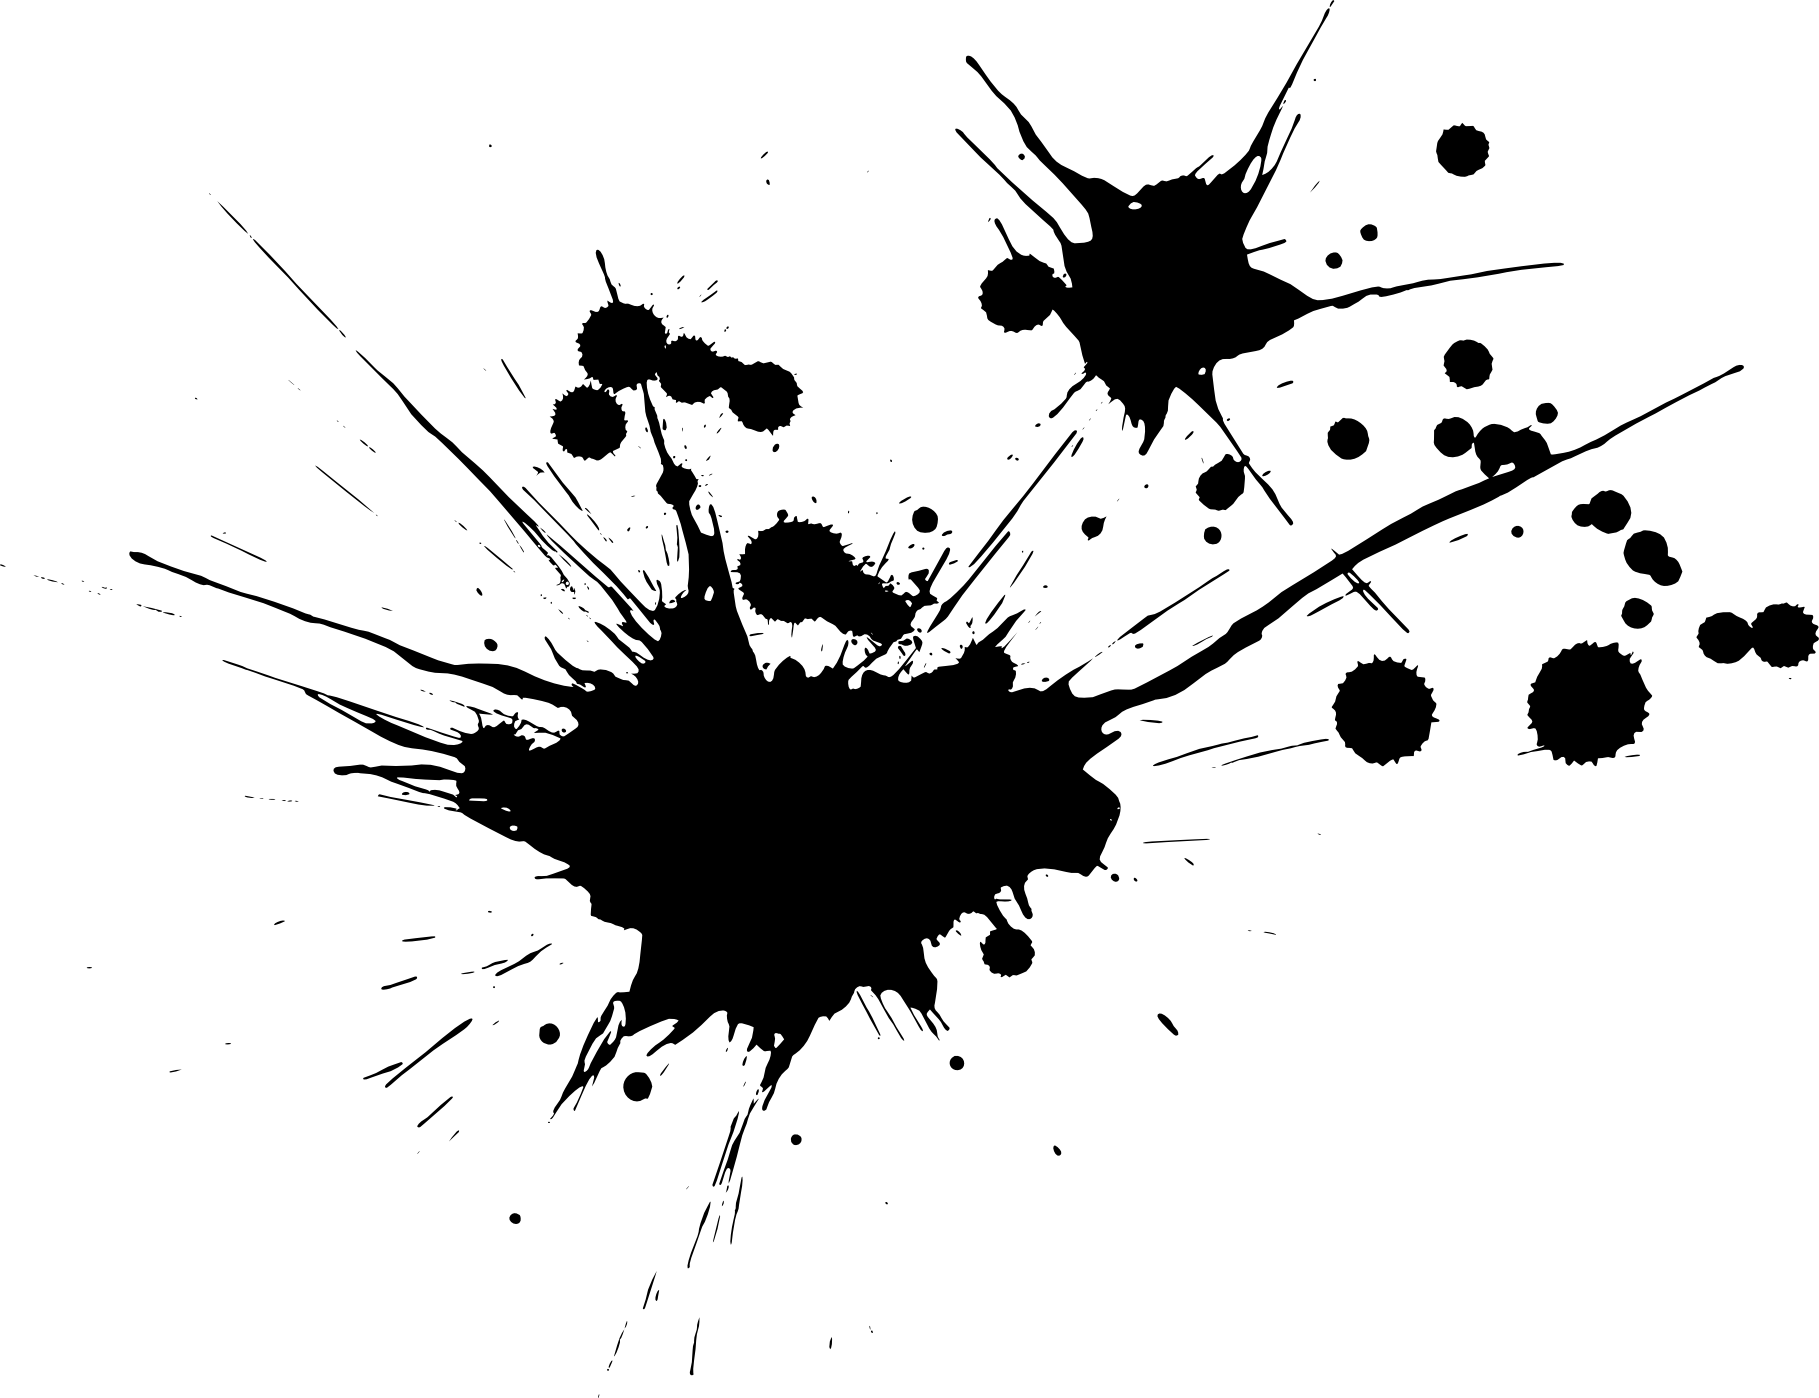 Black splash png. Paint splatters transparent